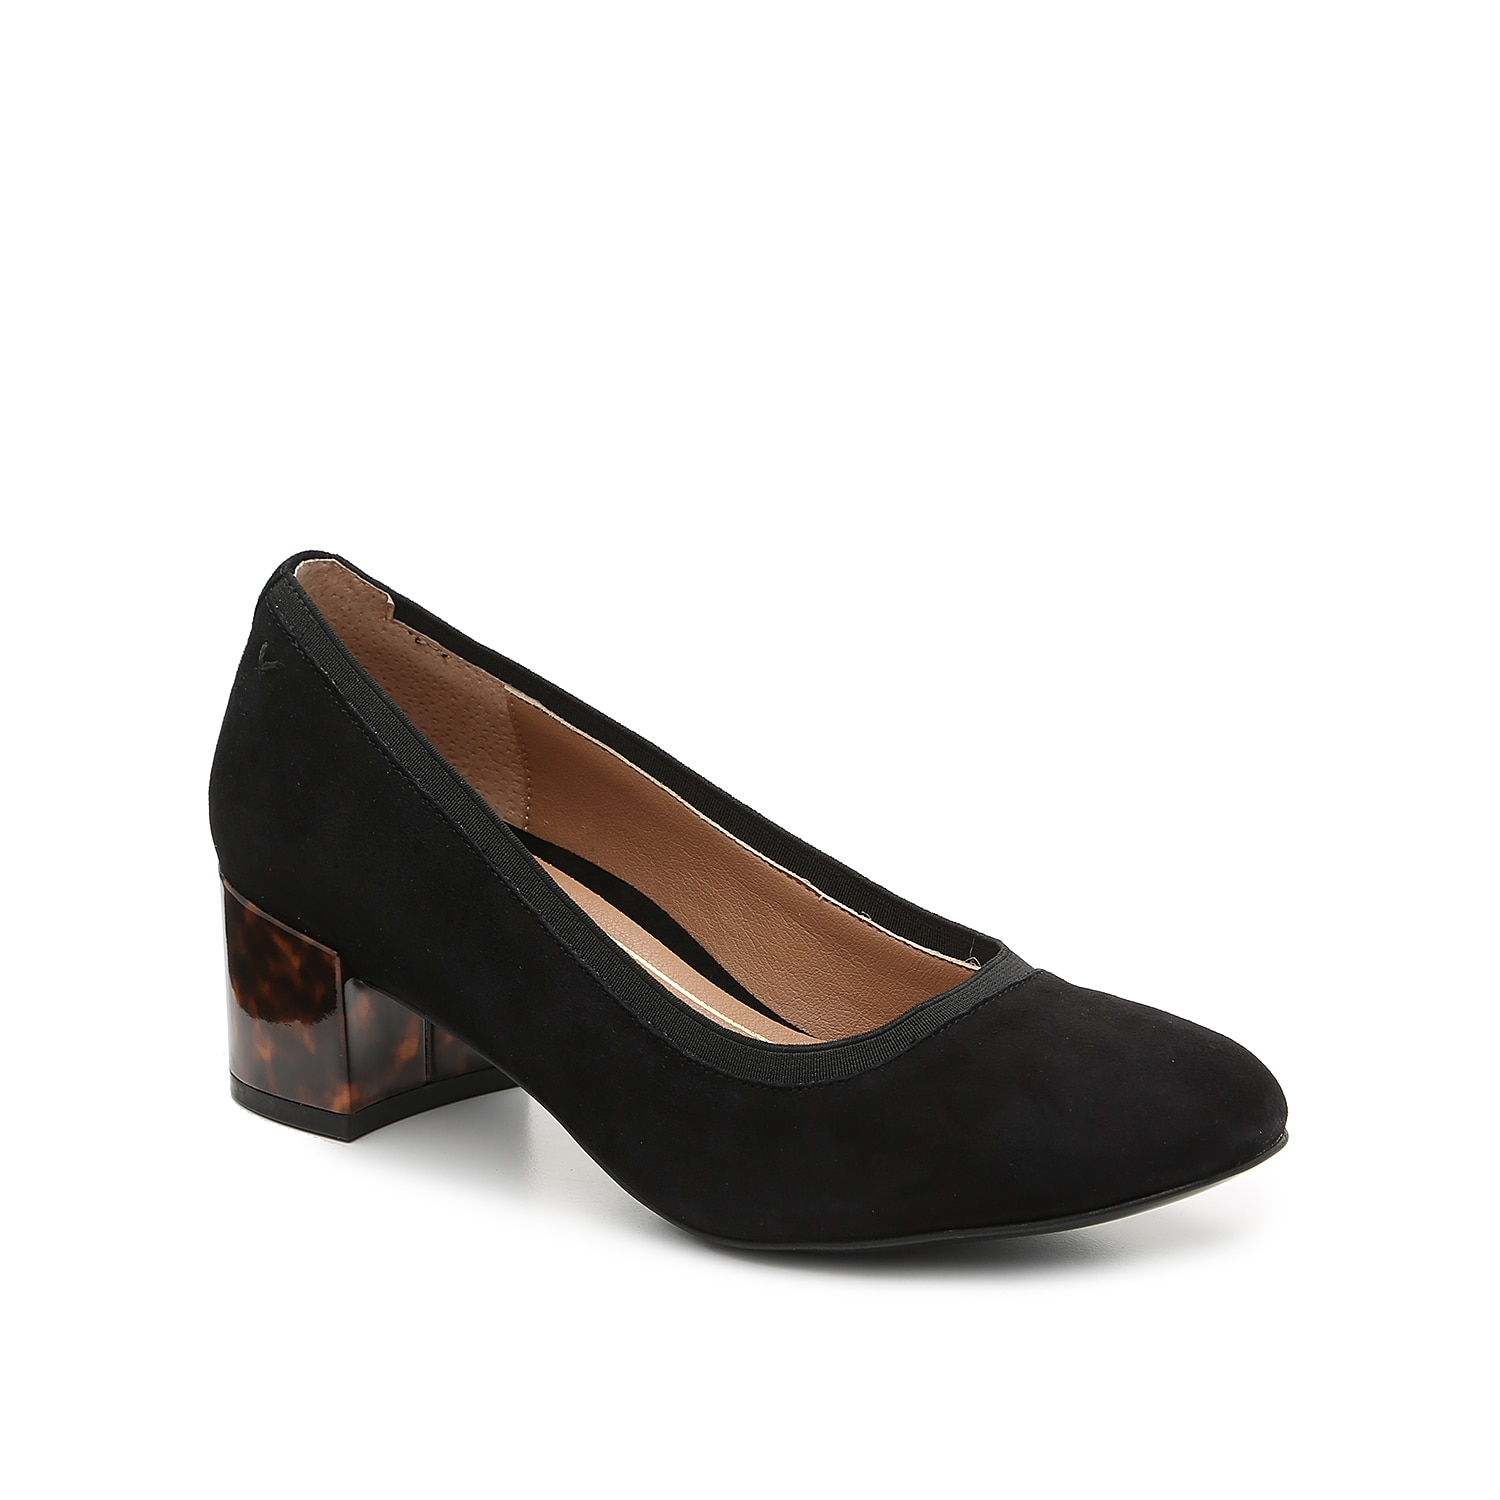 Give your ensemble long-lasting style with the Natalie pump from Vionic. This silhouette is fashioned with soft suede and a marble covered heel that completes your entire look!